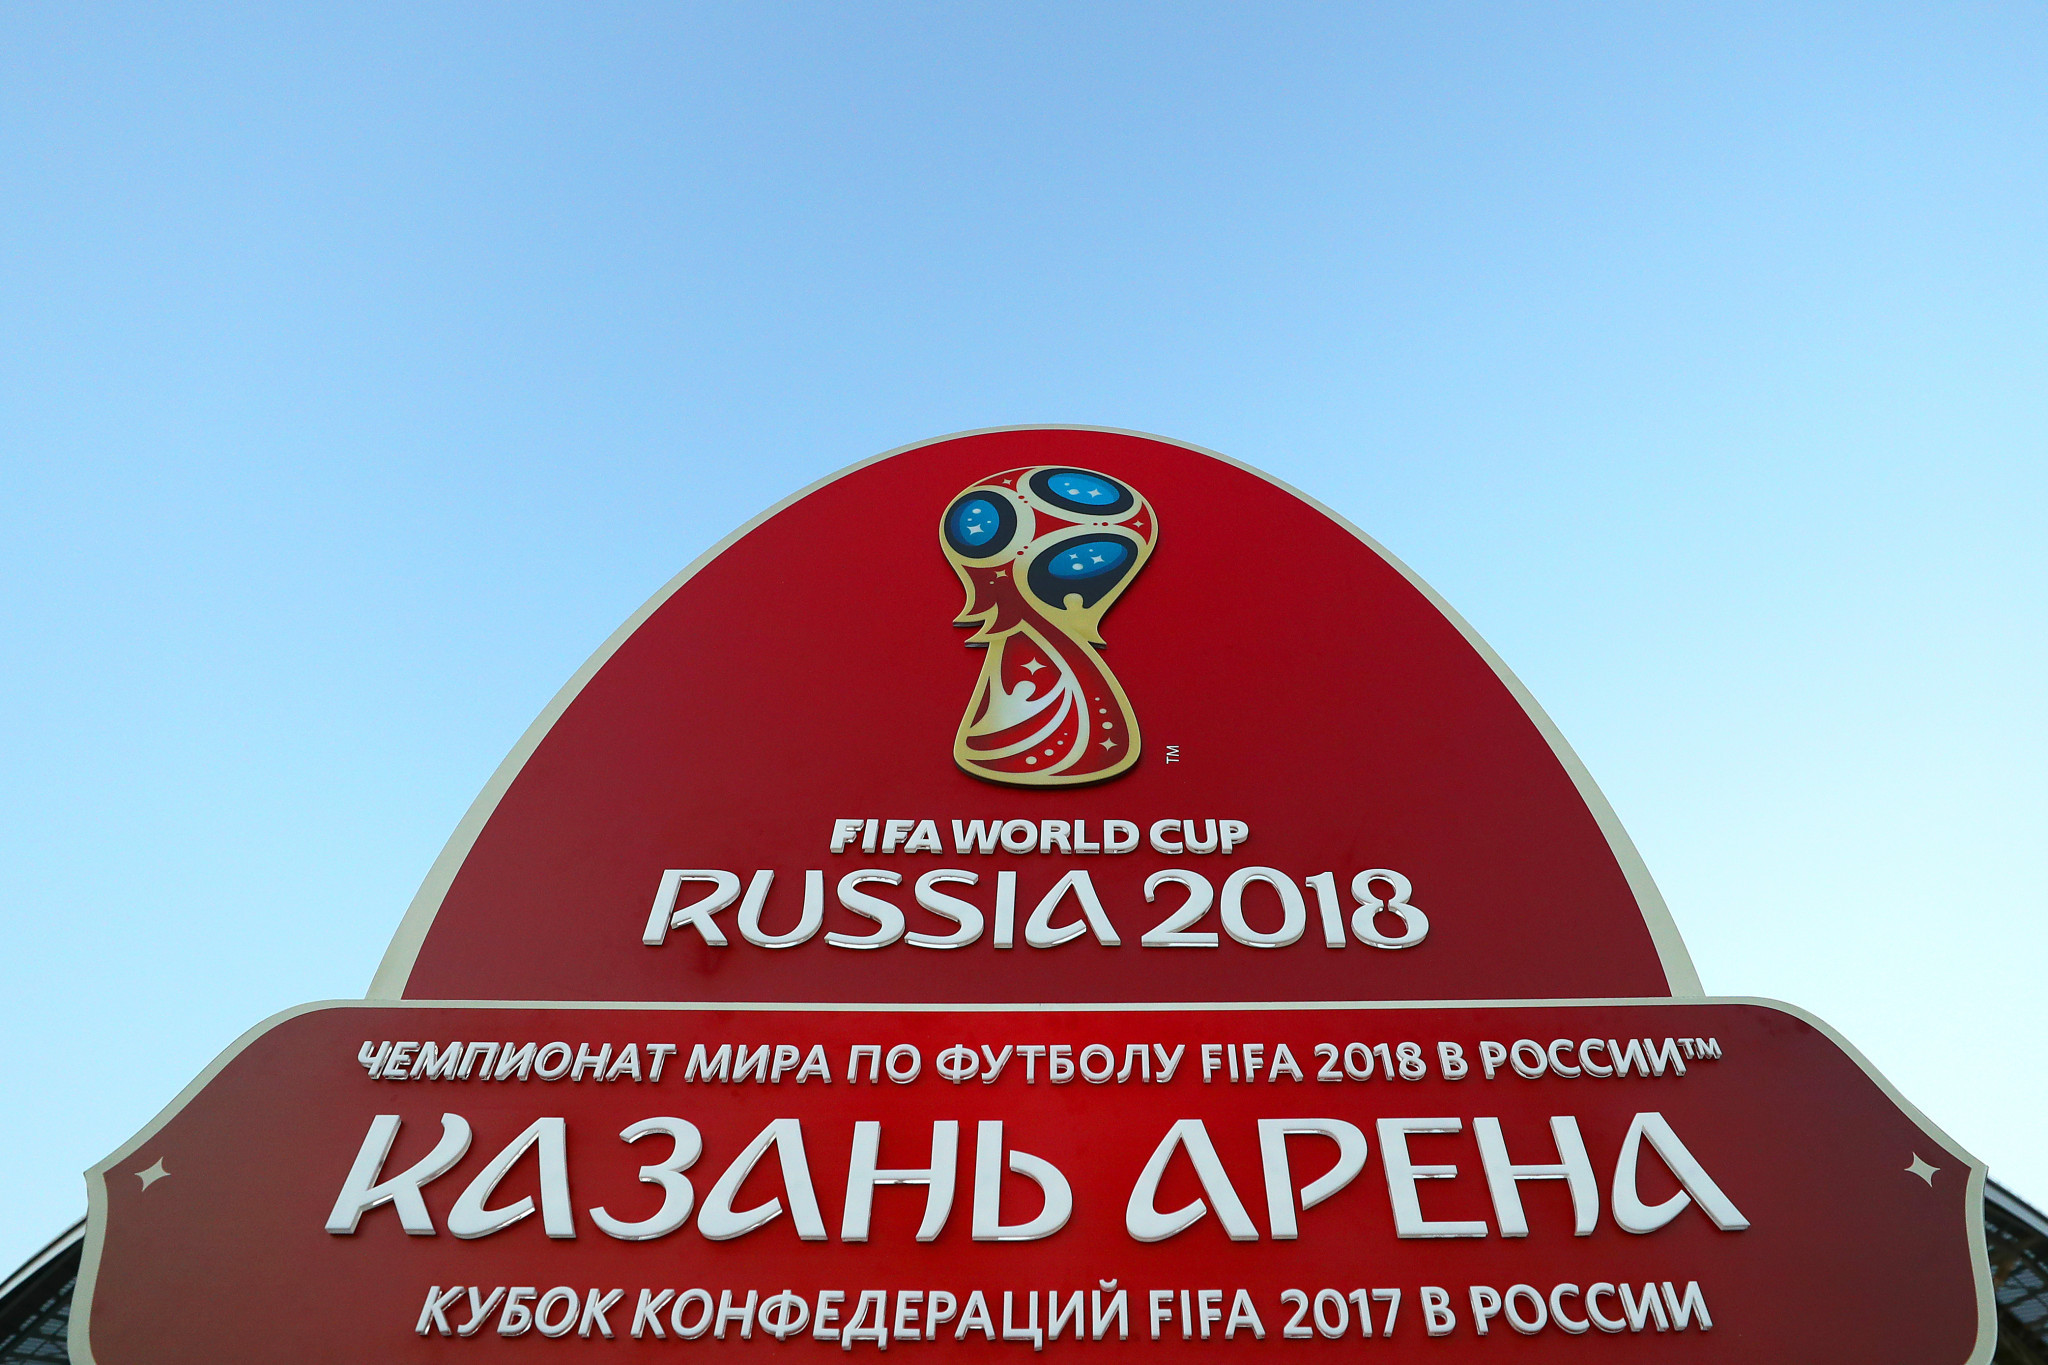 FIFA Council boosts World Cup prize money for Russia 2018